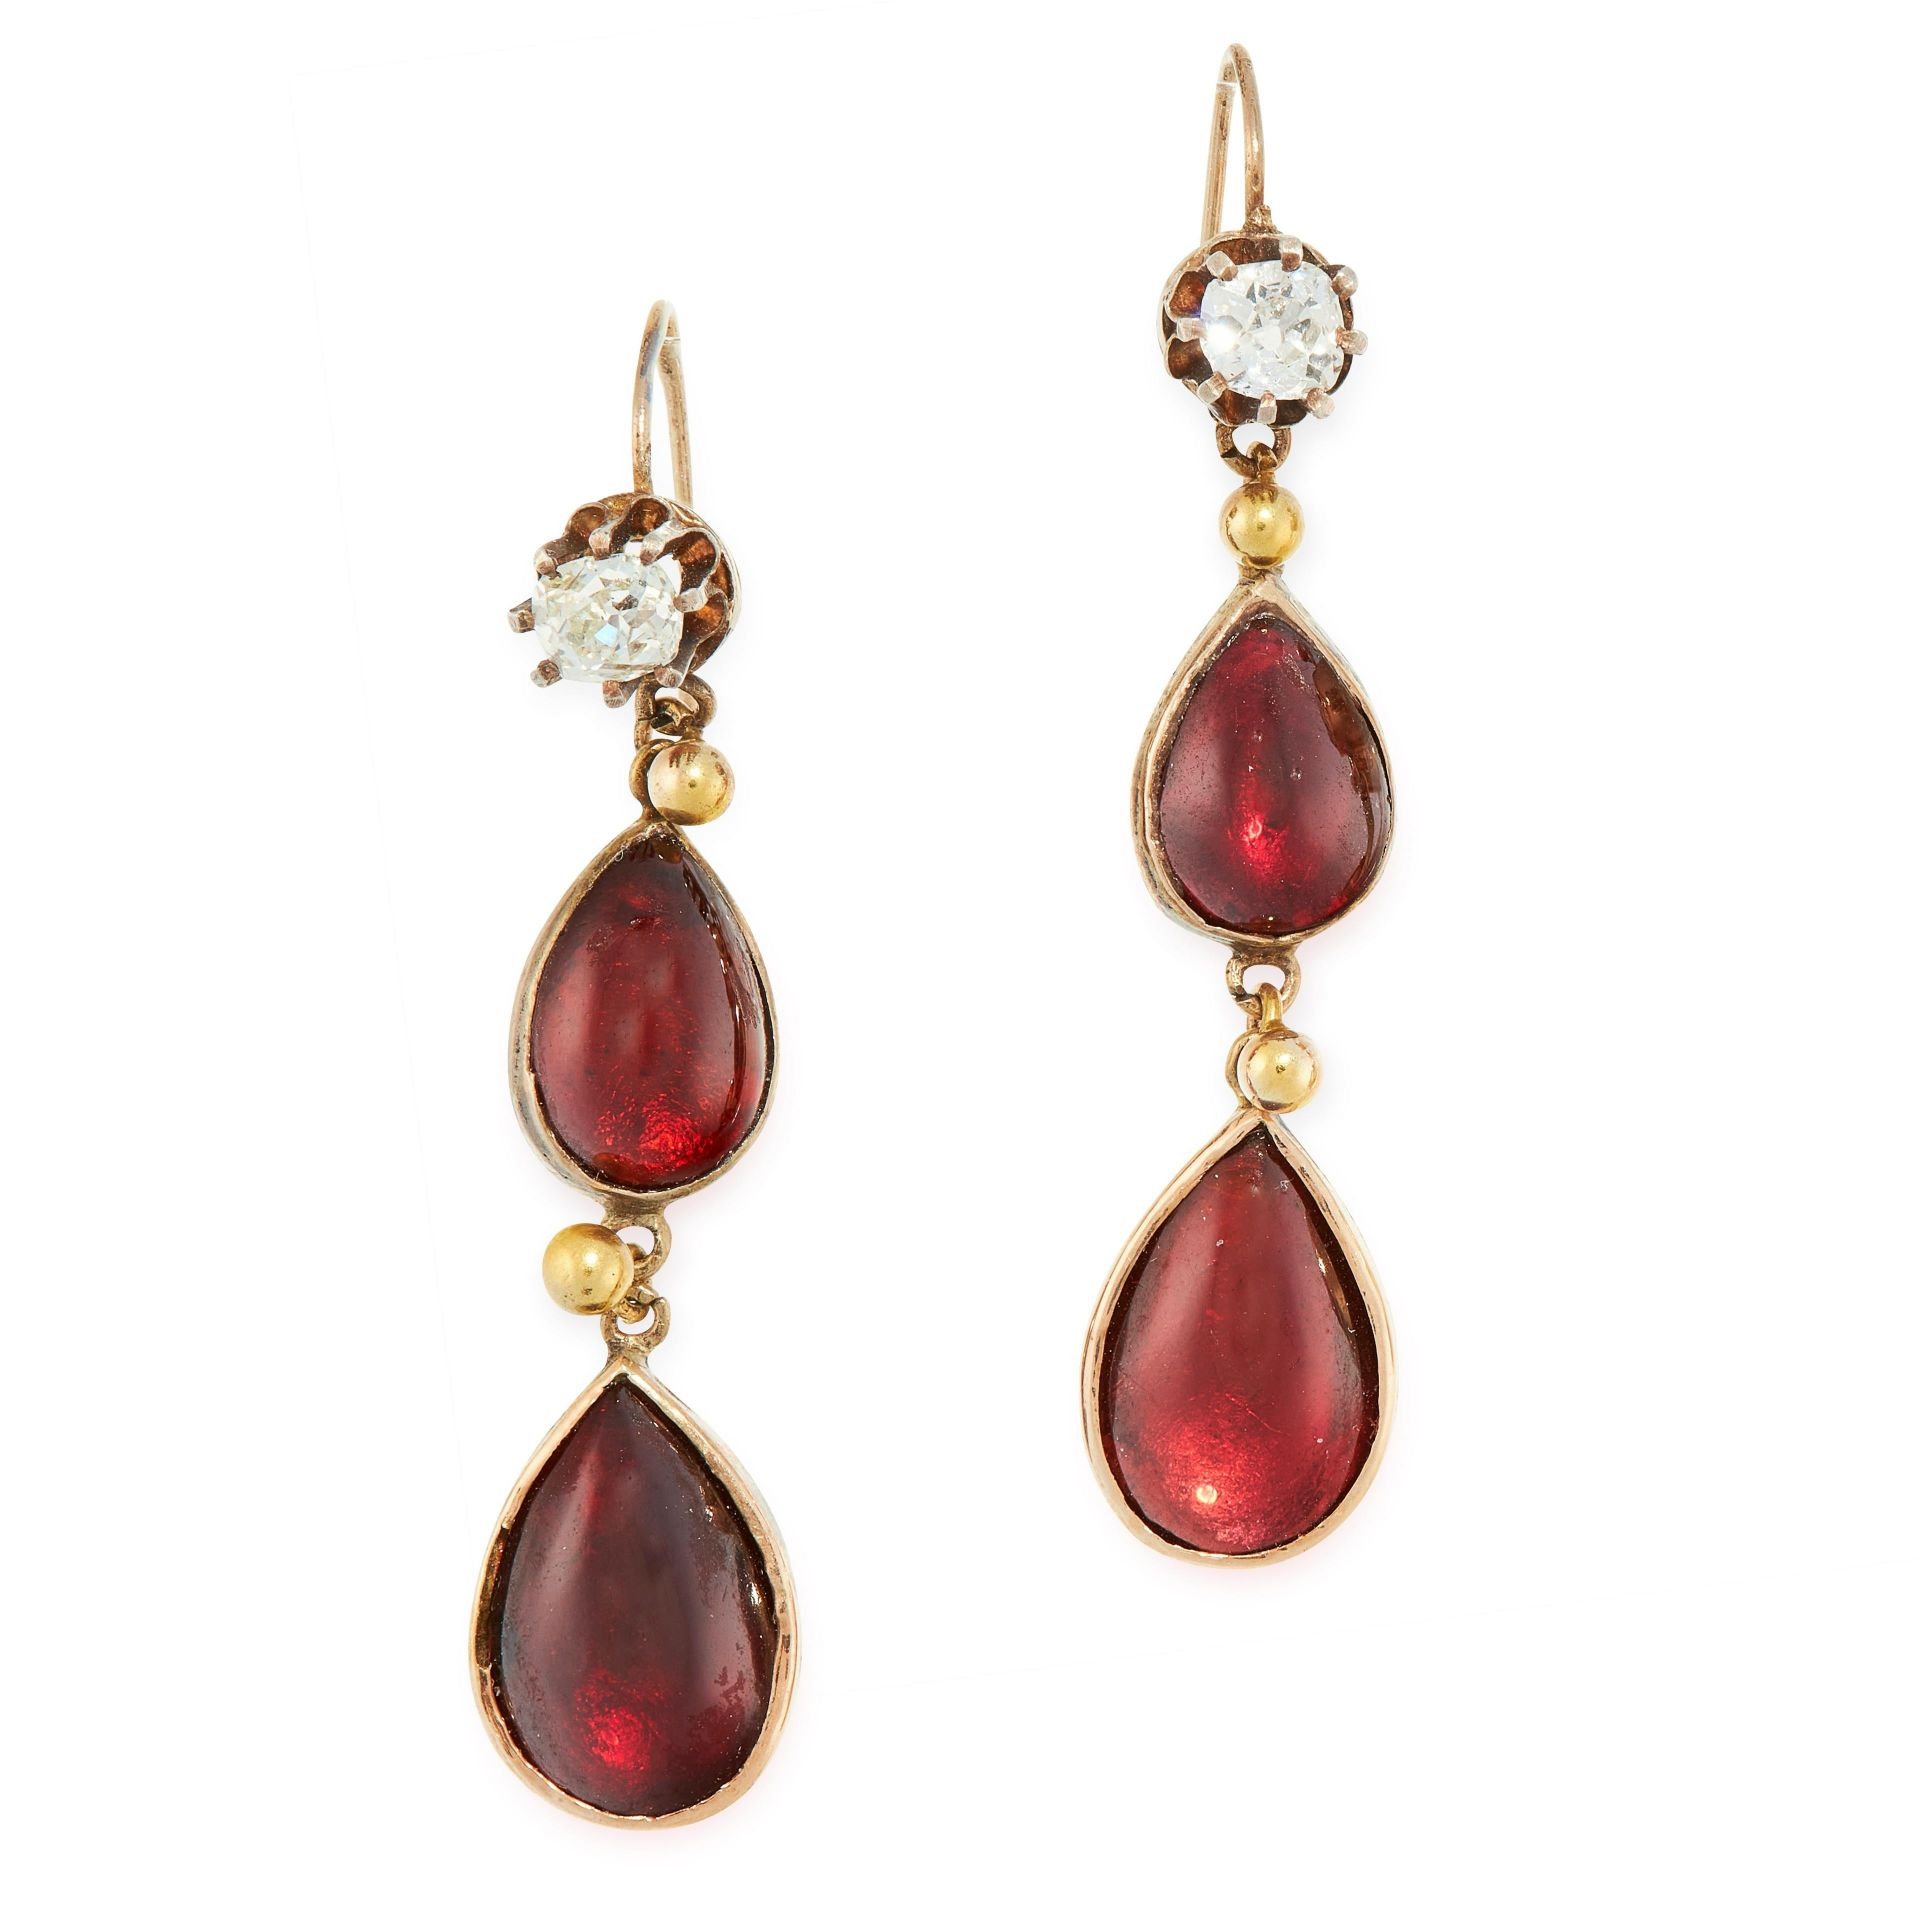 A PAIR OF ANTIQUE GARNET AND DIAMOND DROP EARRINGS, 19TH CENTURY in yellow gold, set with pear